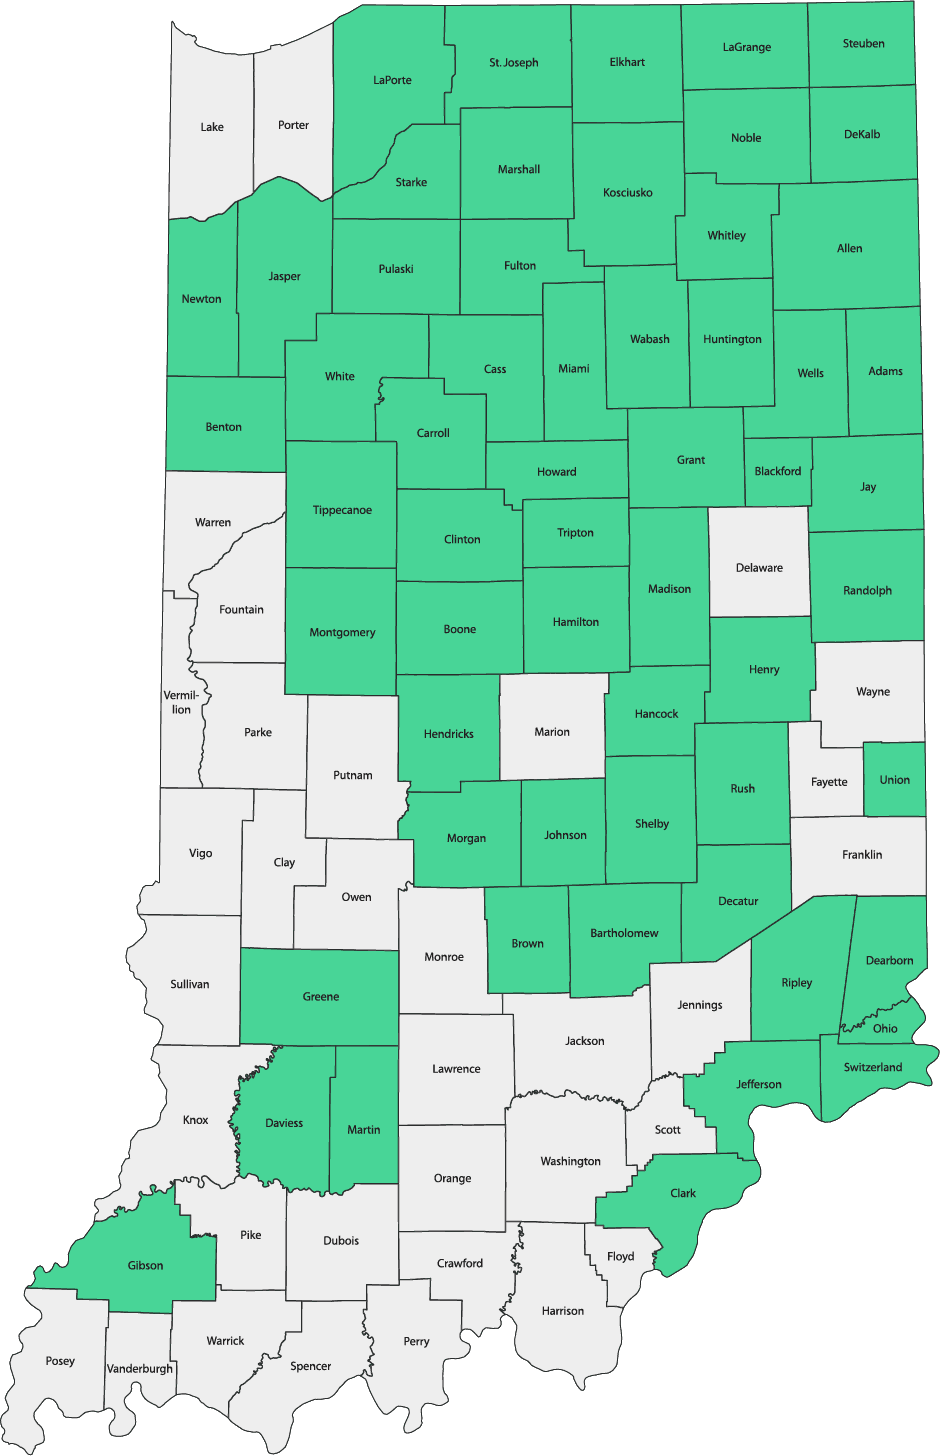 Availability by County in Indiana